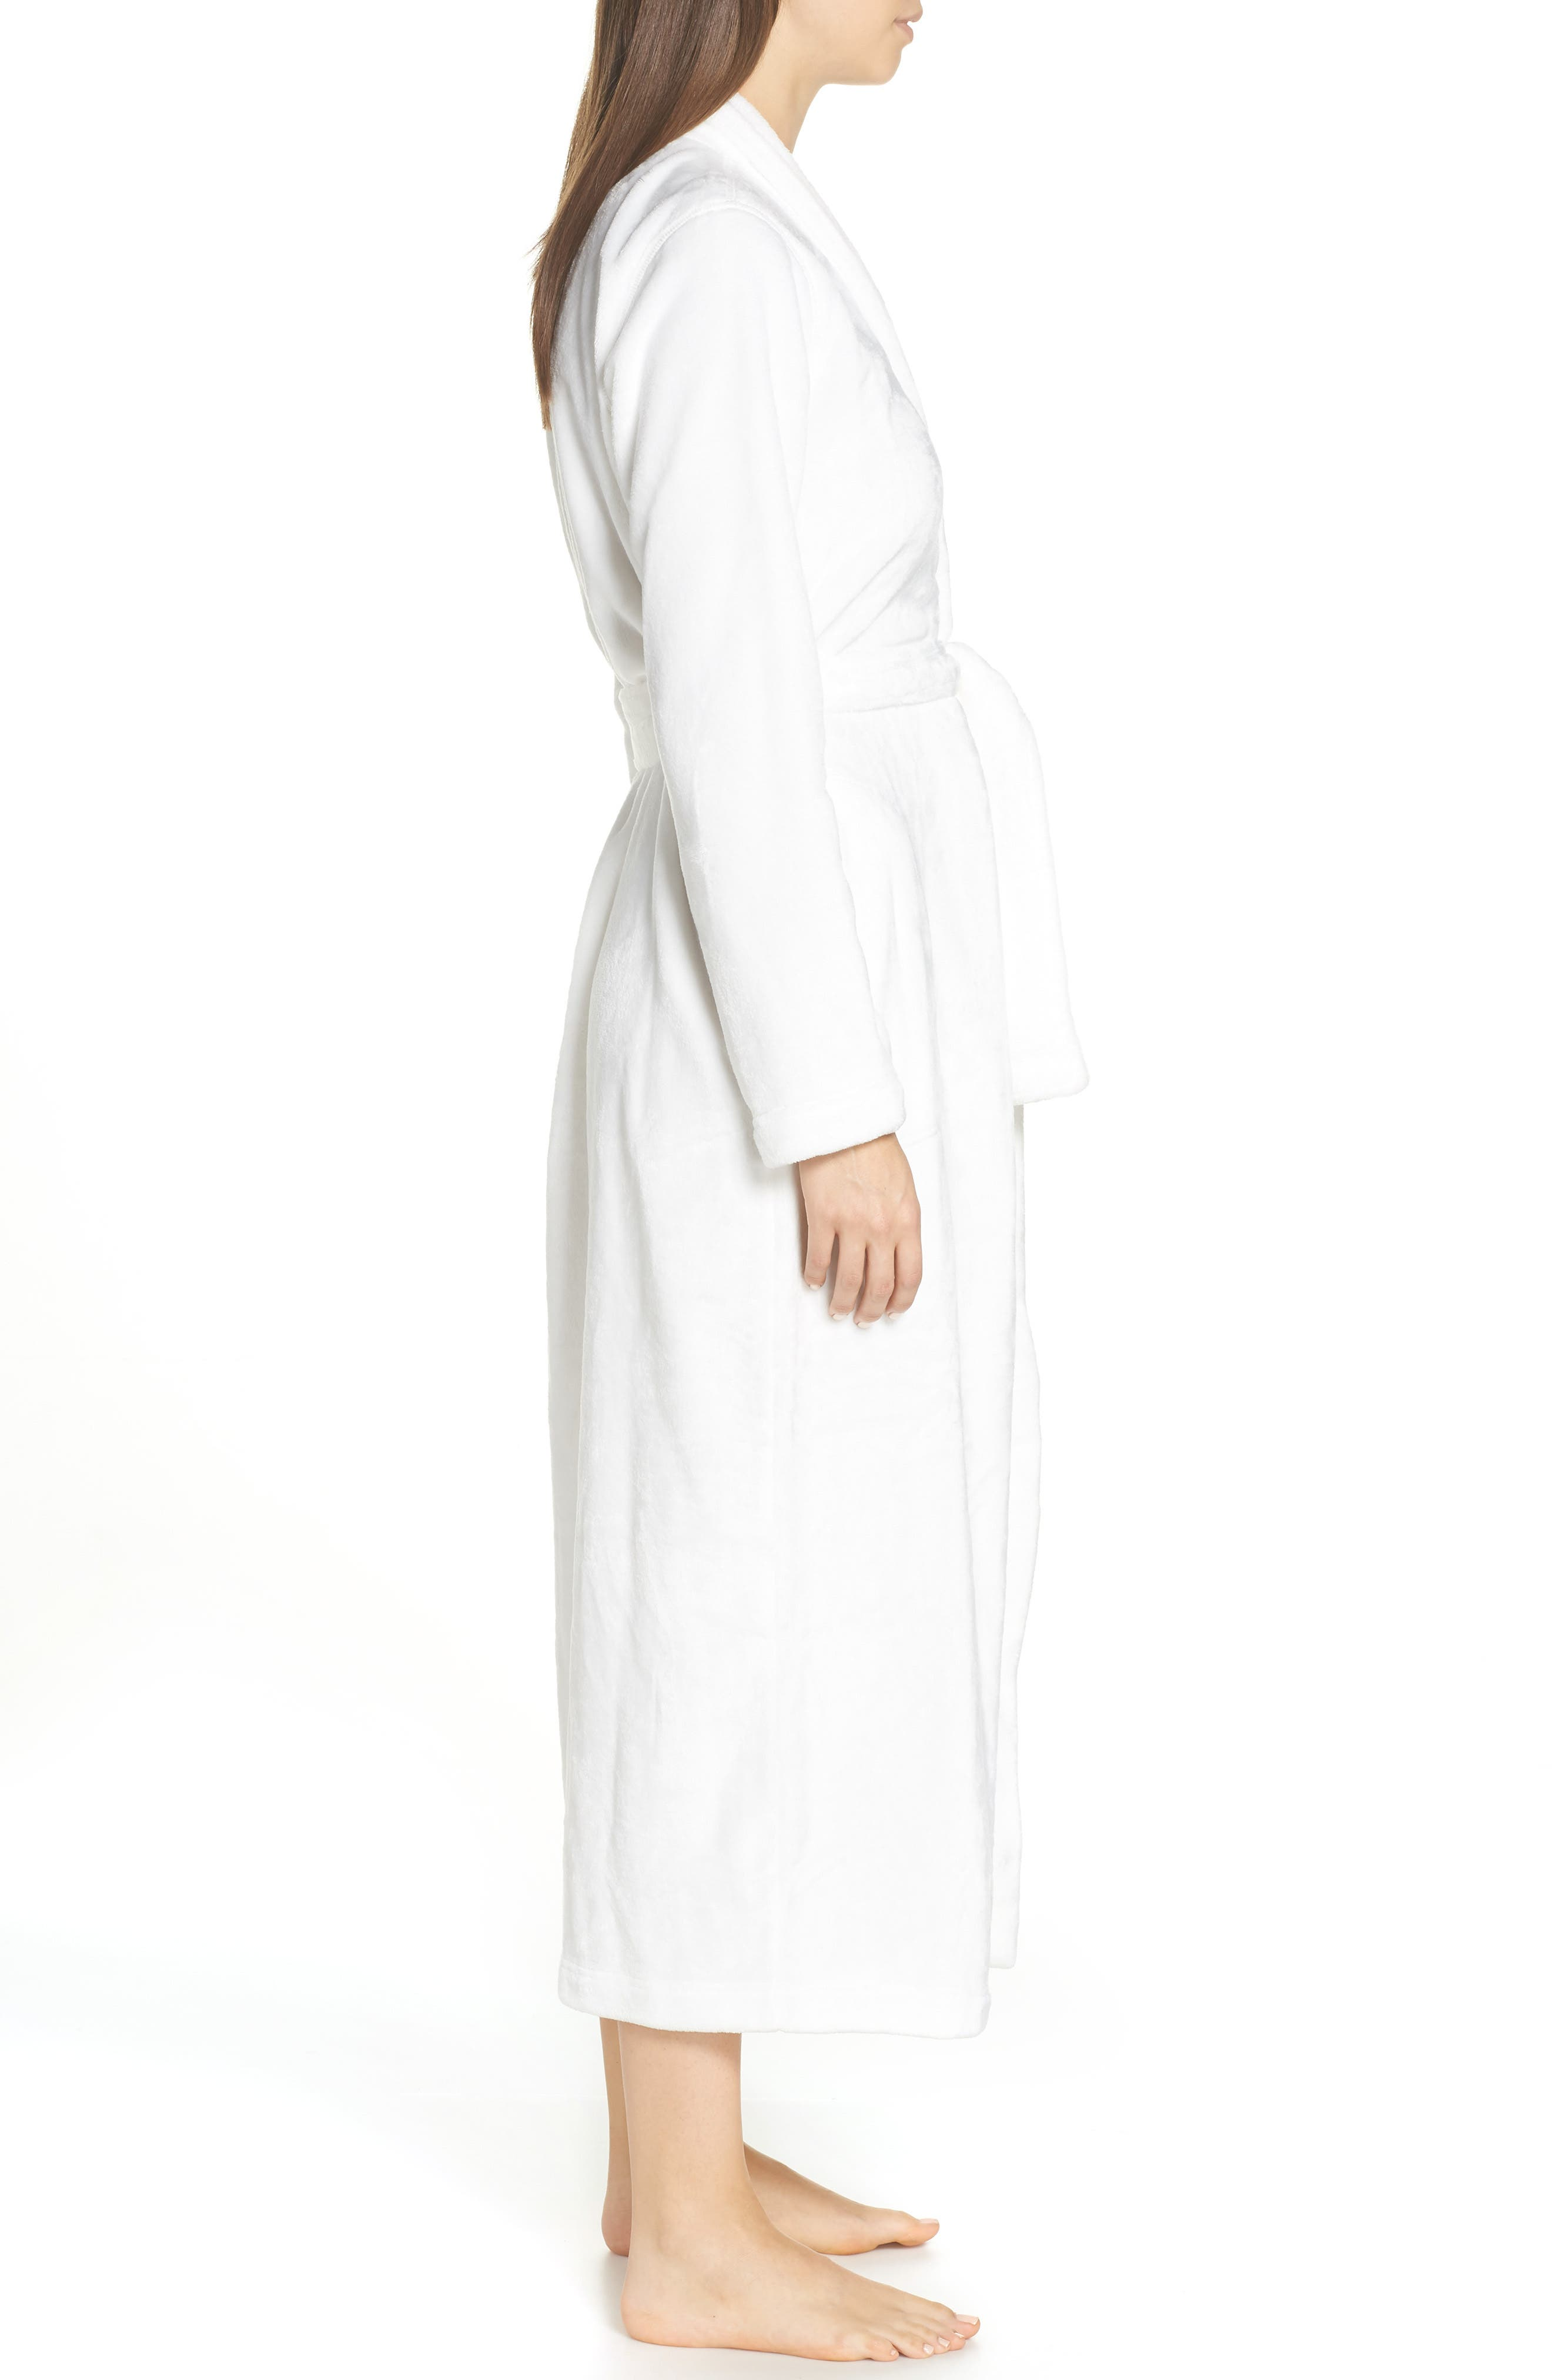 UGG<SUP>®</SUP>, Marlow Double-Face Fleece Robe, Alternate thumbnail 3, color, SEAGULL